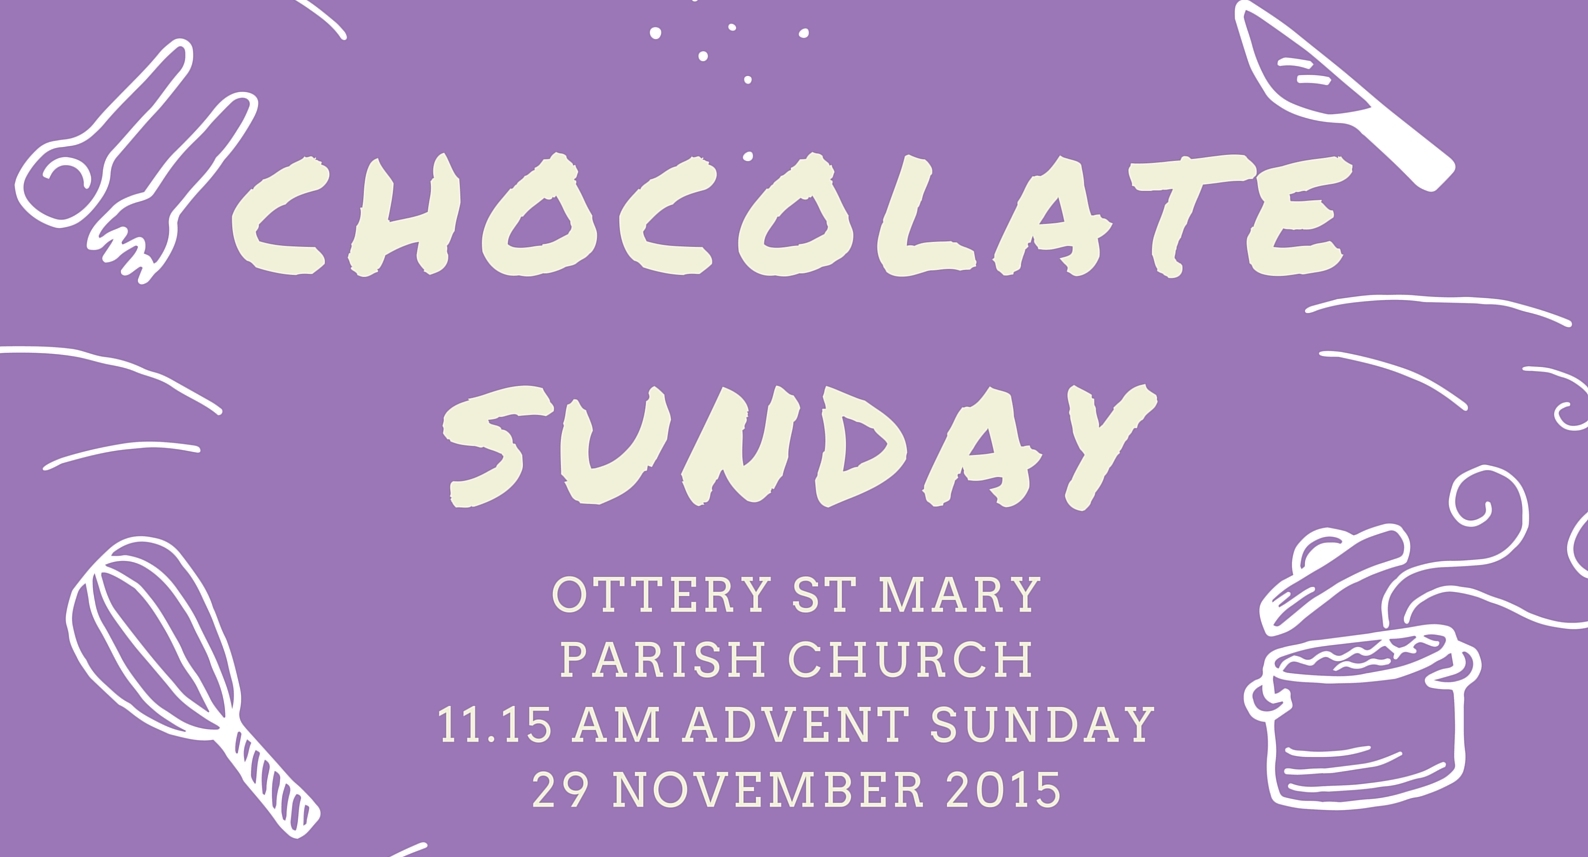 Chocolate Sunday, 29 November 2015